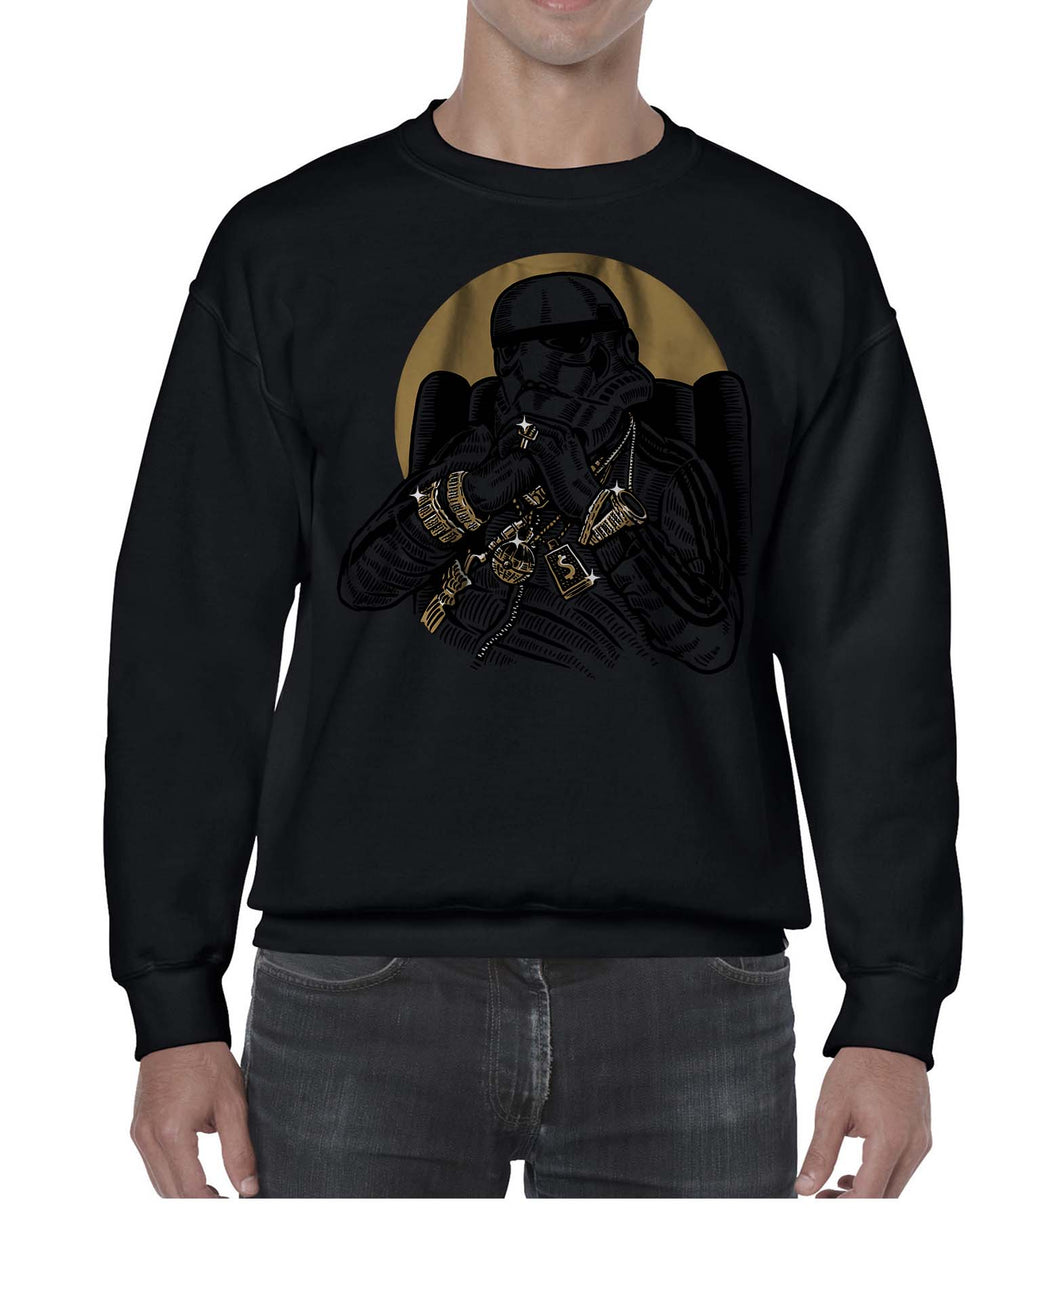 Gangsta Trooper Movie Inspired Fan Art Graphic Sweater Jumper Sweatshirt Mens Ladies Kids Unisex 3327